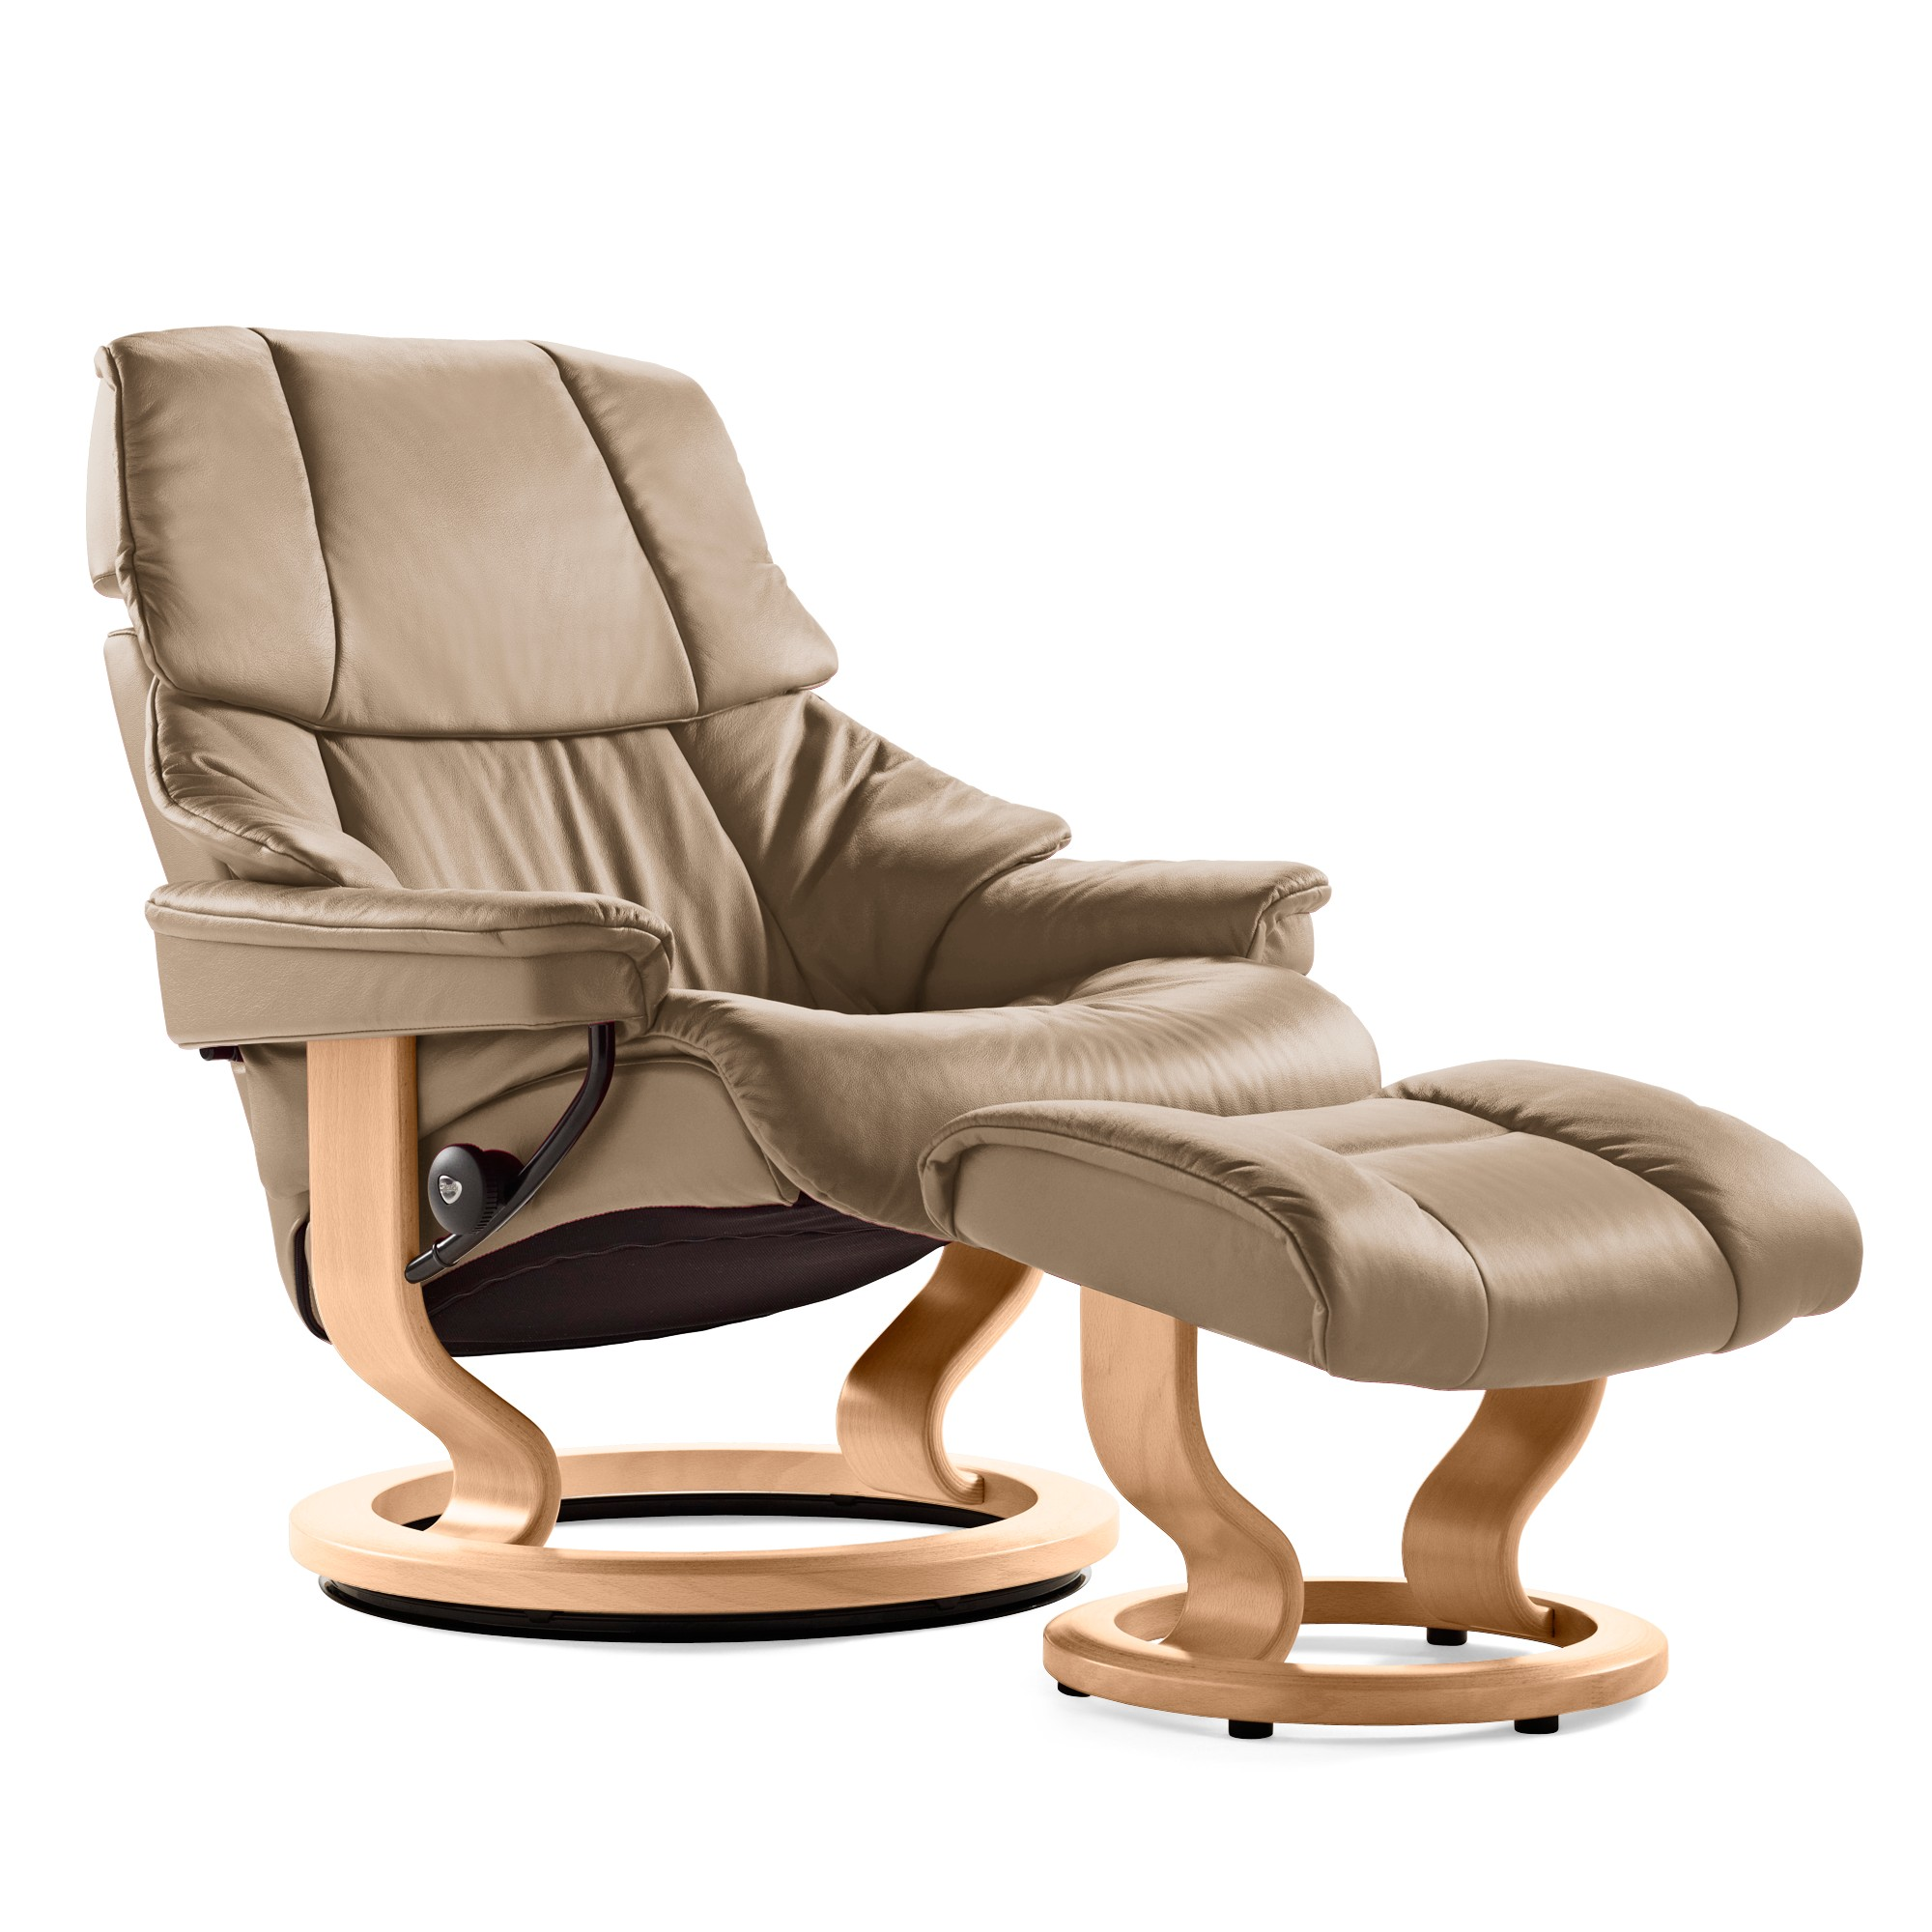 Stressless consul small chair and stool in batick leather - Picture Of Stressless Reno Chair Large With Classic Base By Ekornes